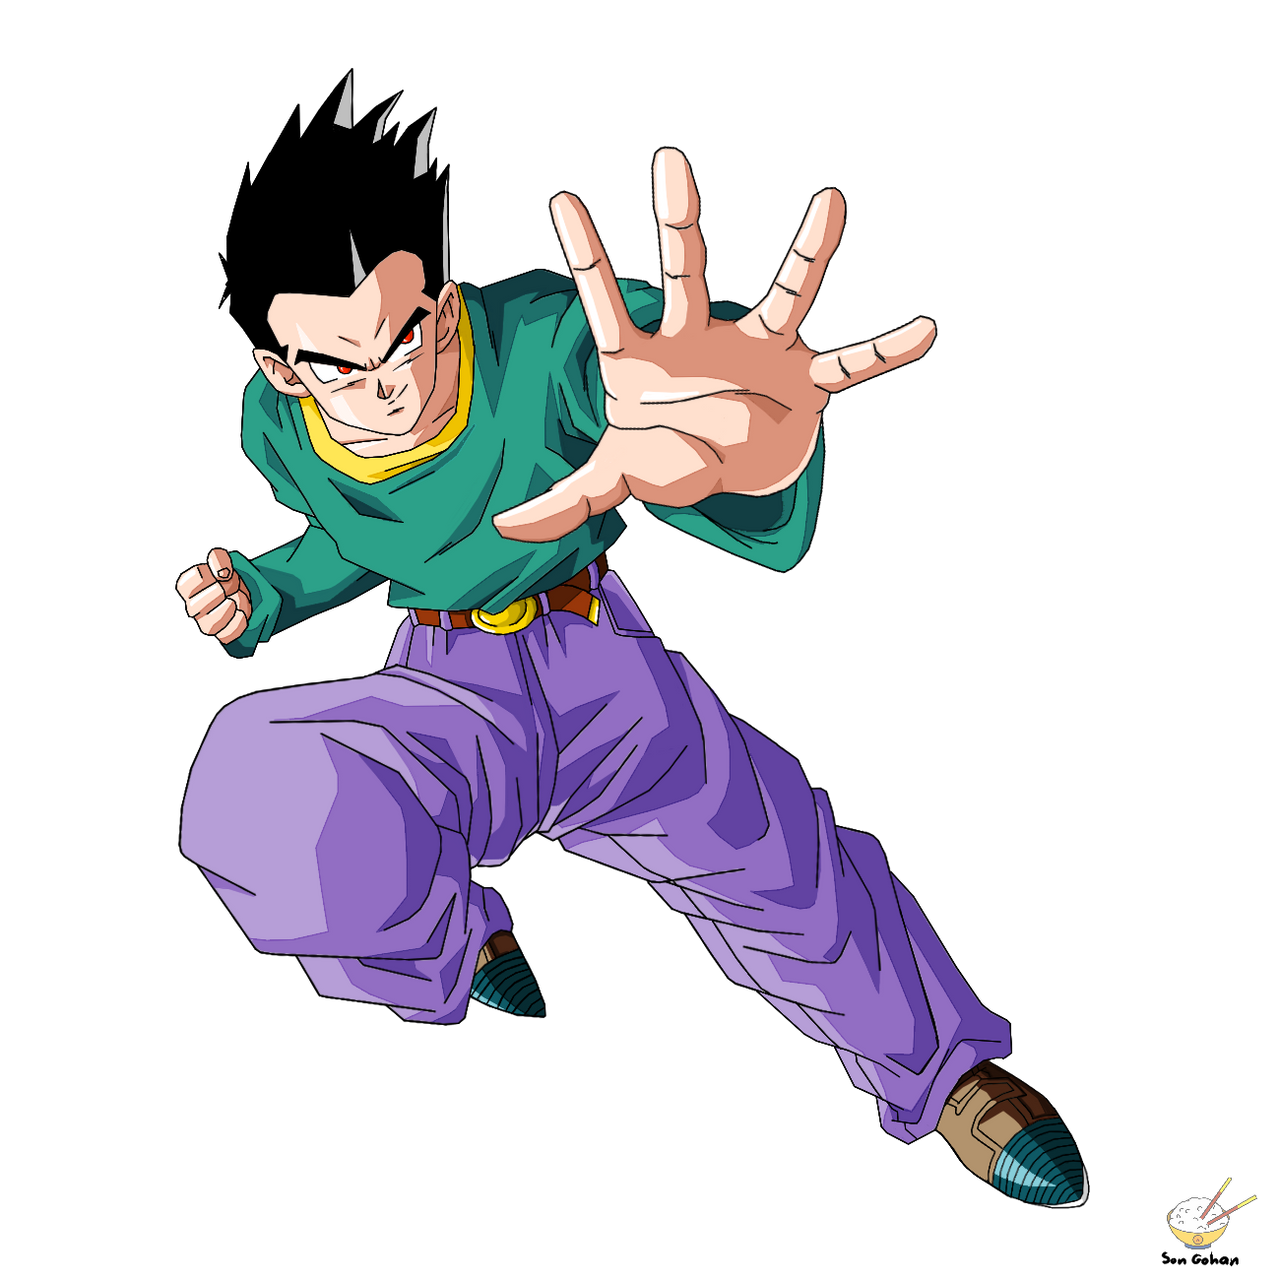 Dragon Ball - GOTEN EVIL by songohanart - 474.2KB